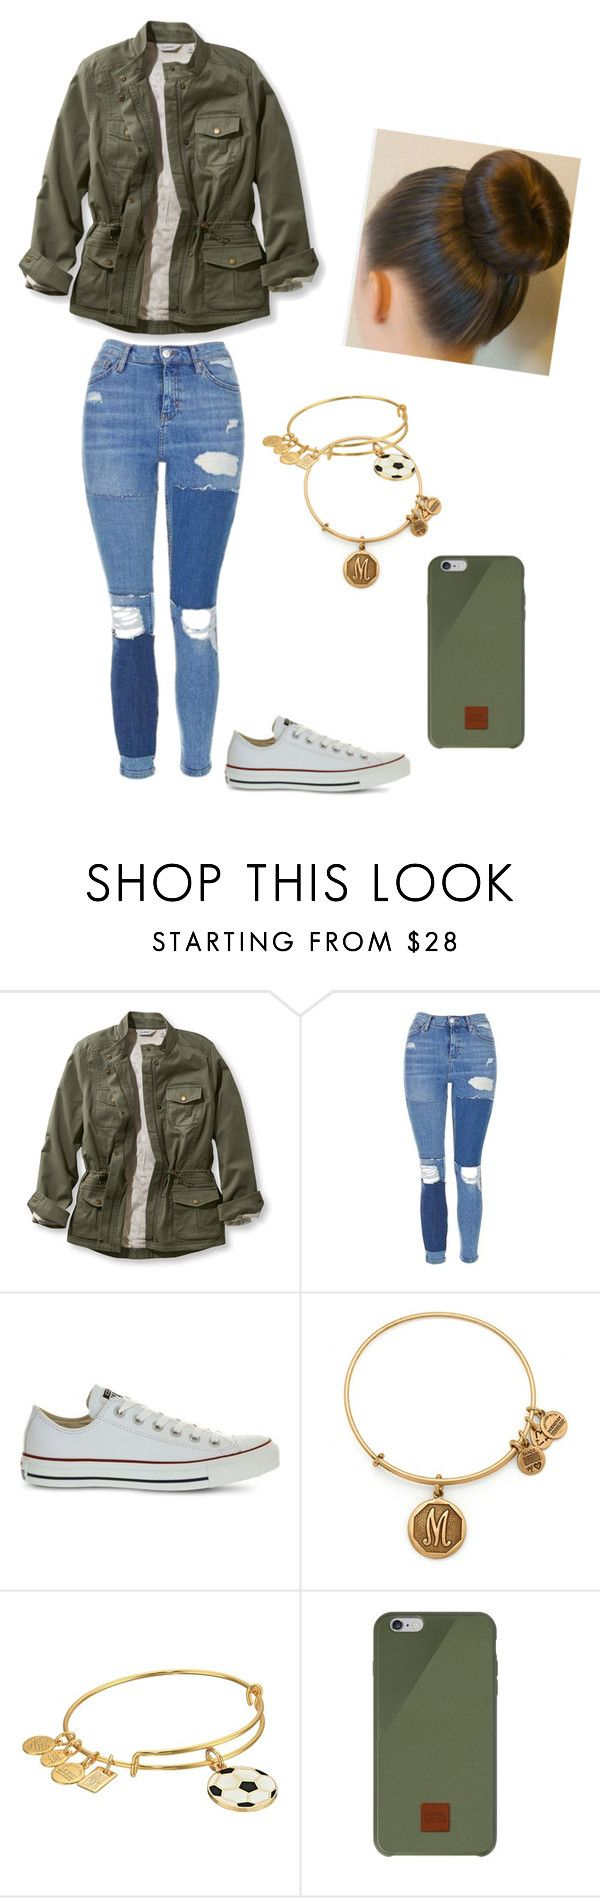 """""""should u make more teen themes or adult"""" by maliyah-waldron on Polyvore featuring L.L.Bean, Topshop, Converse, Alex and Ani, Native Union and plus size clothing"""